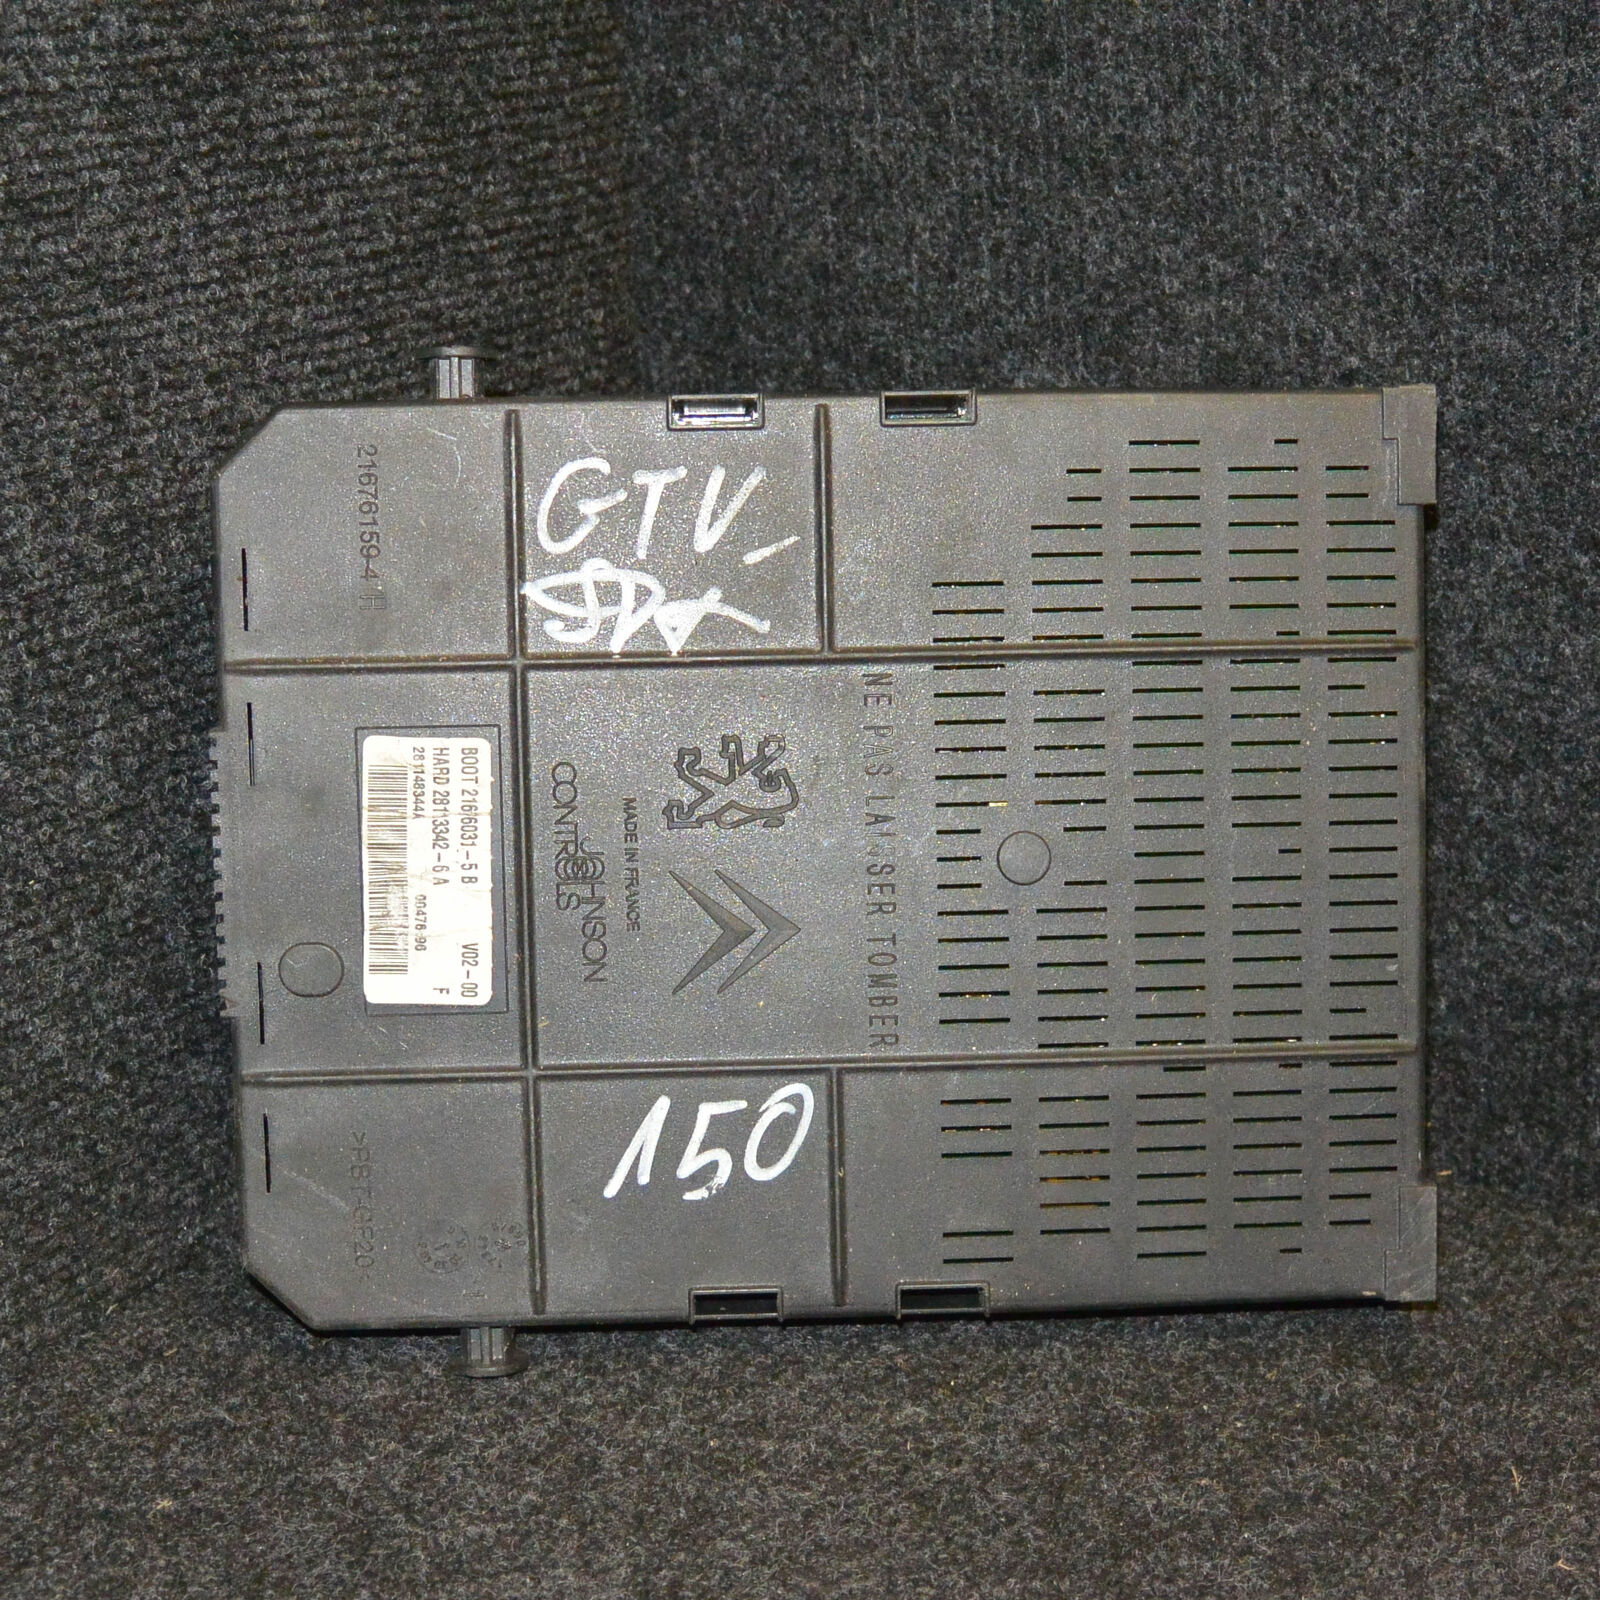 Citroen C4 Mk1 Fuse Box 16 Petrol 80kw 9660105680 2005 3000 Fault 1 Of 9only Available